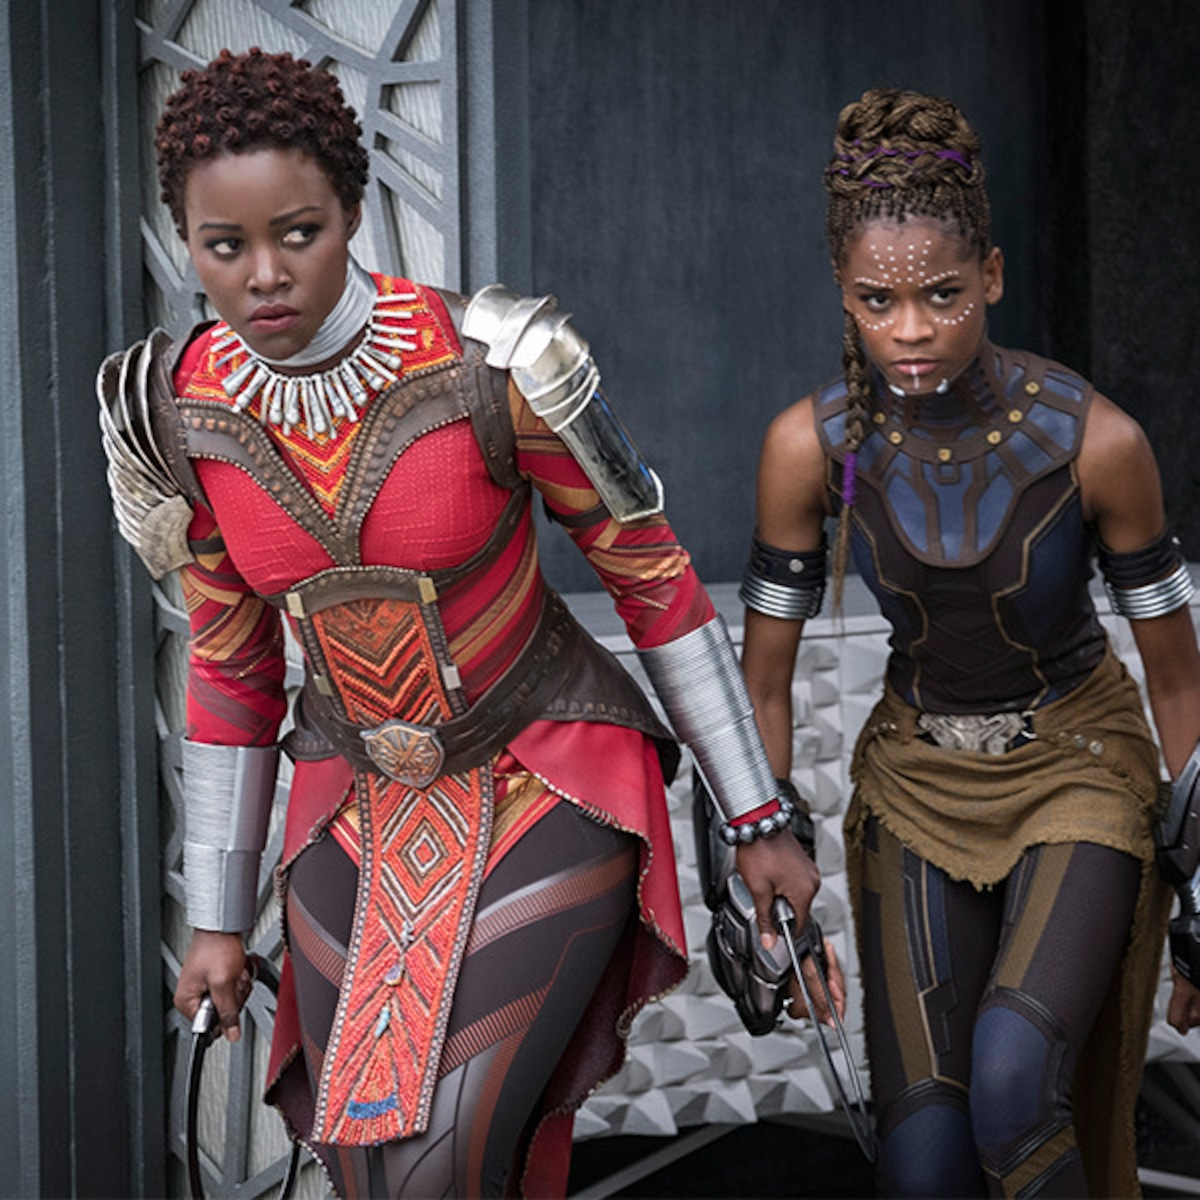 Catch A Christmas Star Dvd.4 Mind Blowing Secrets Behind The Makeup In Black Panther